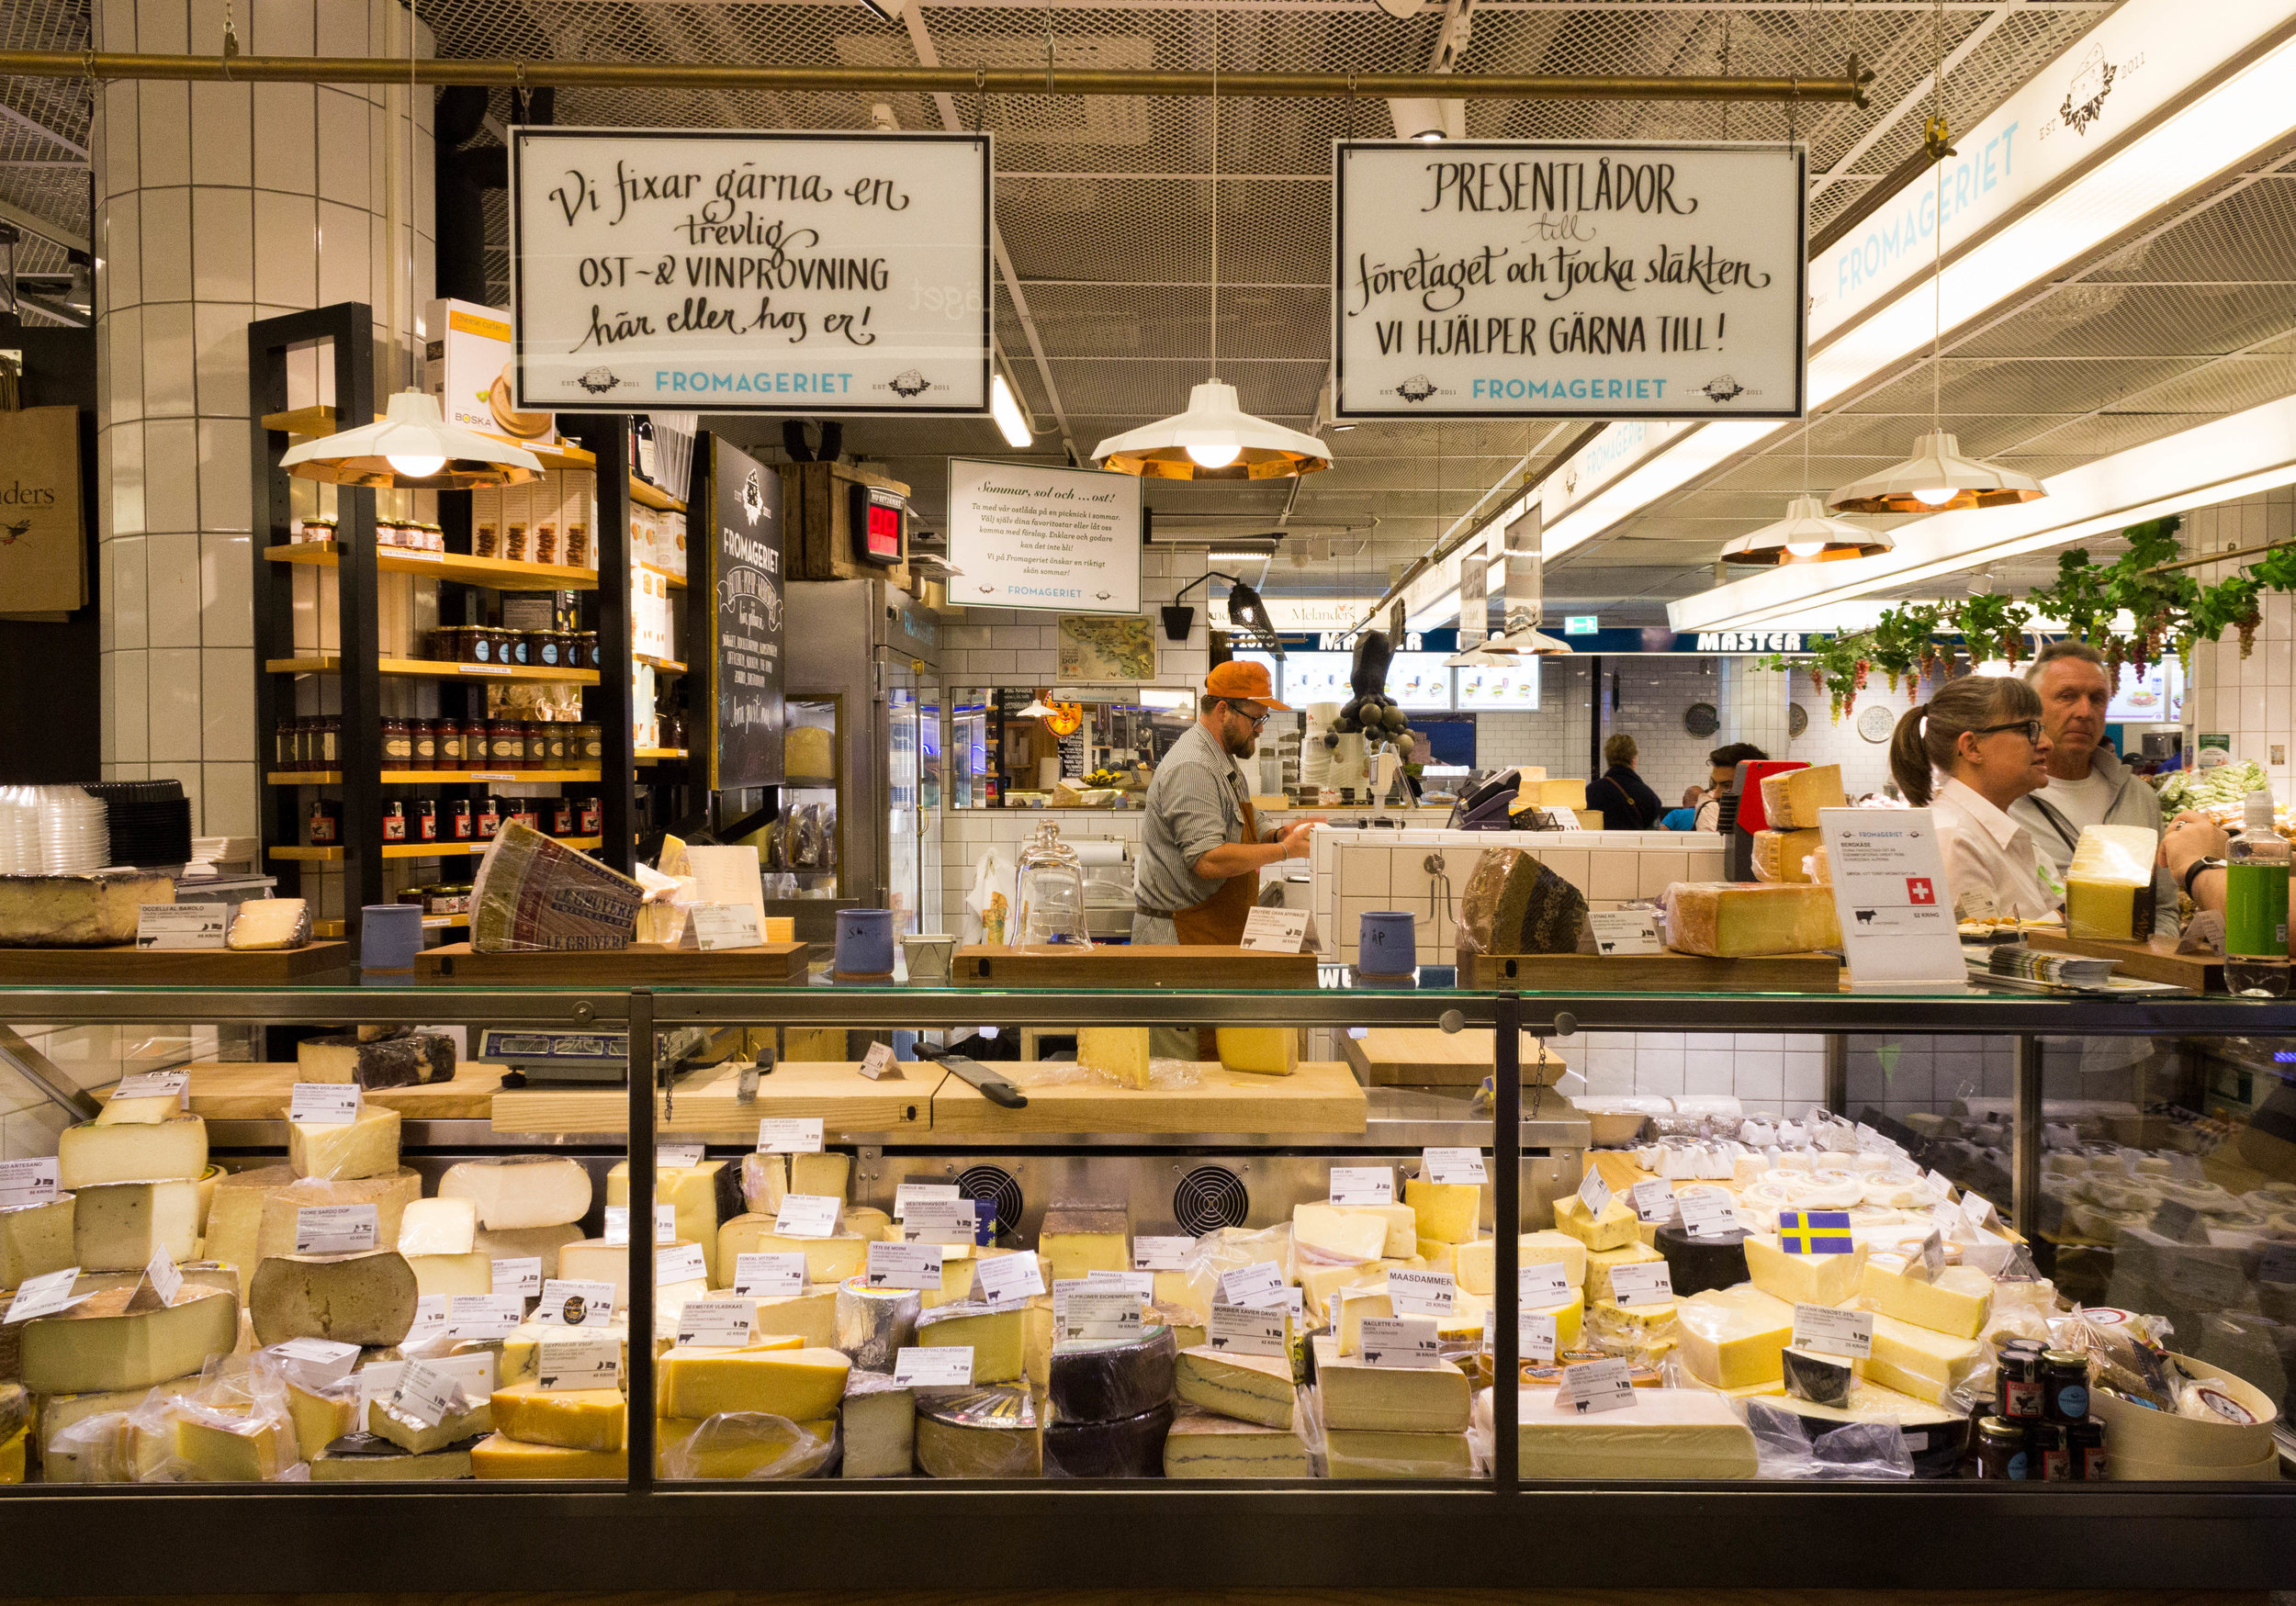 Fromageriet, a store selling Nordic cheeses